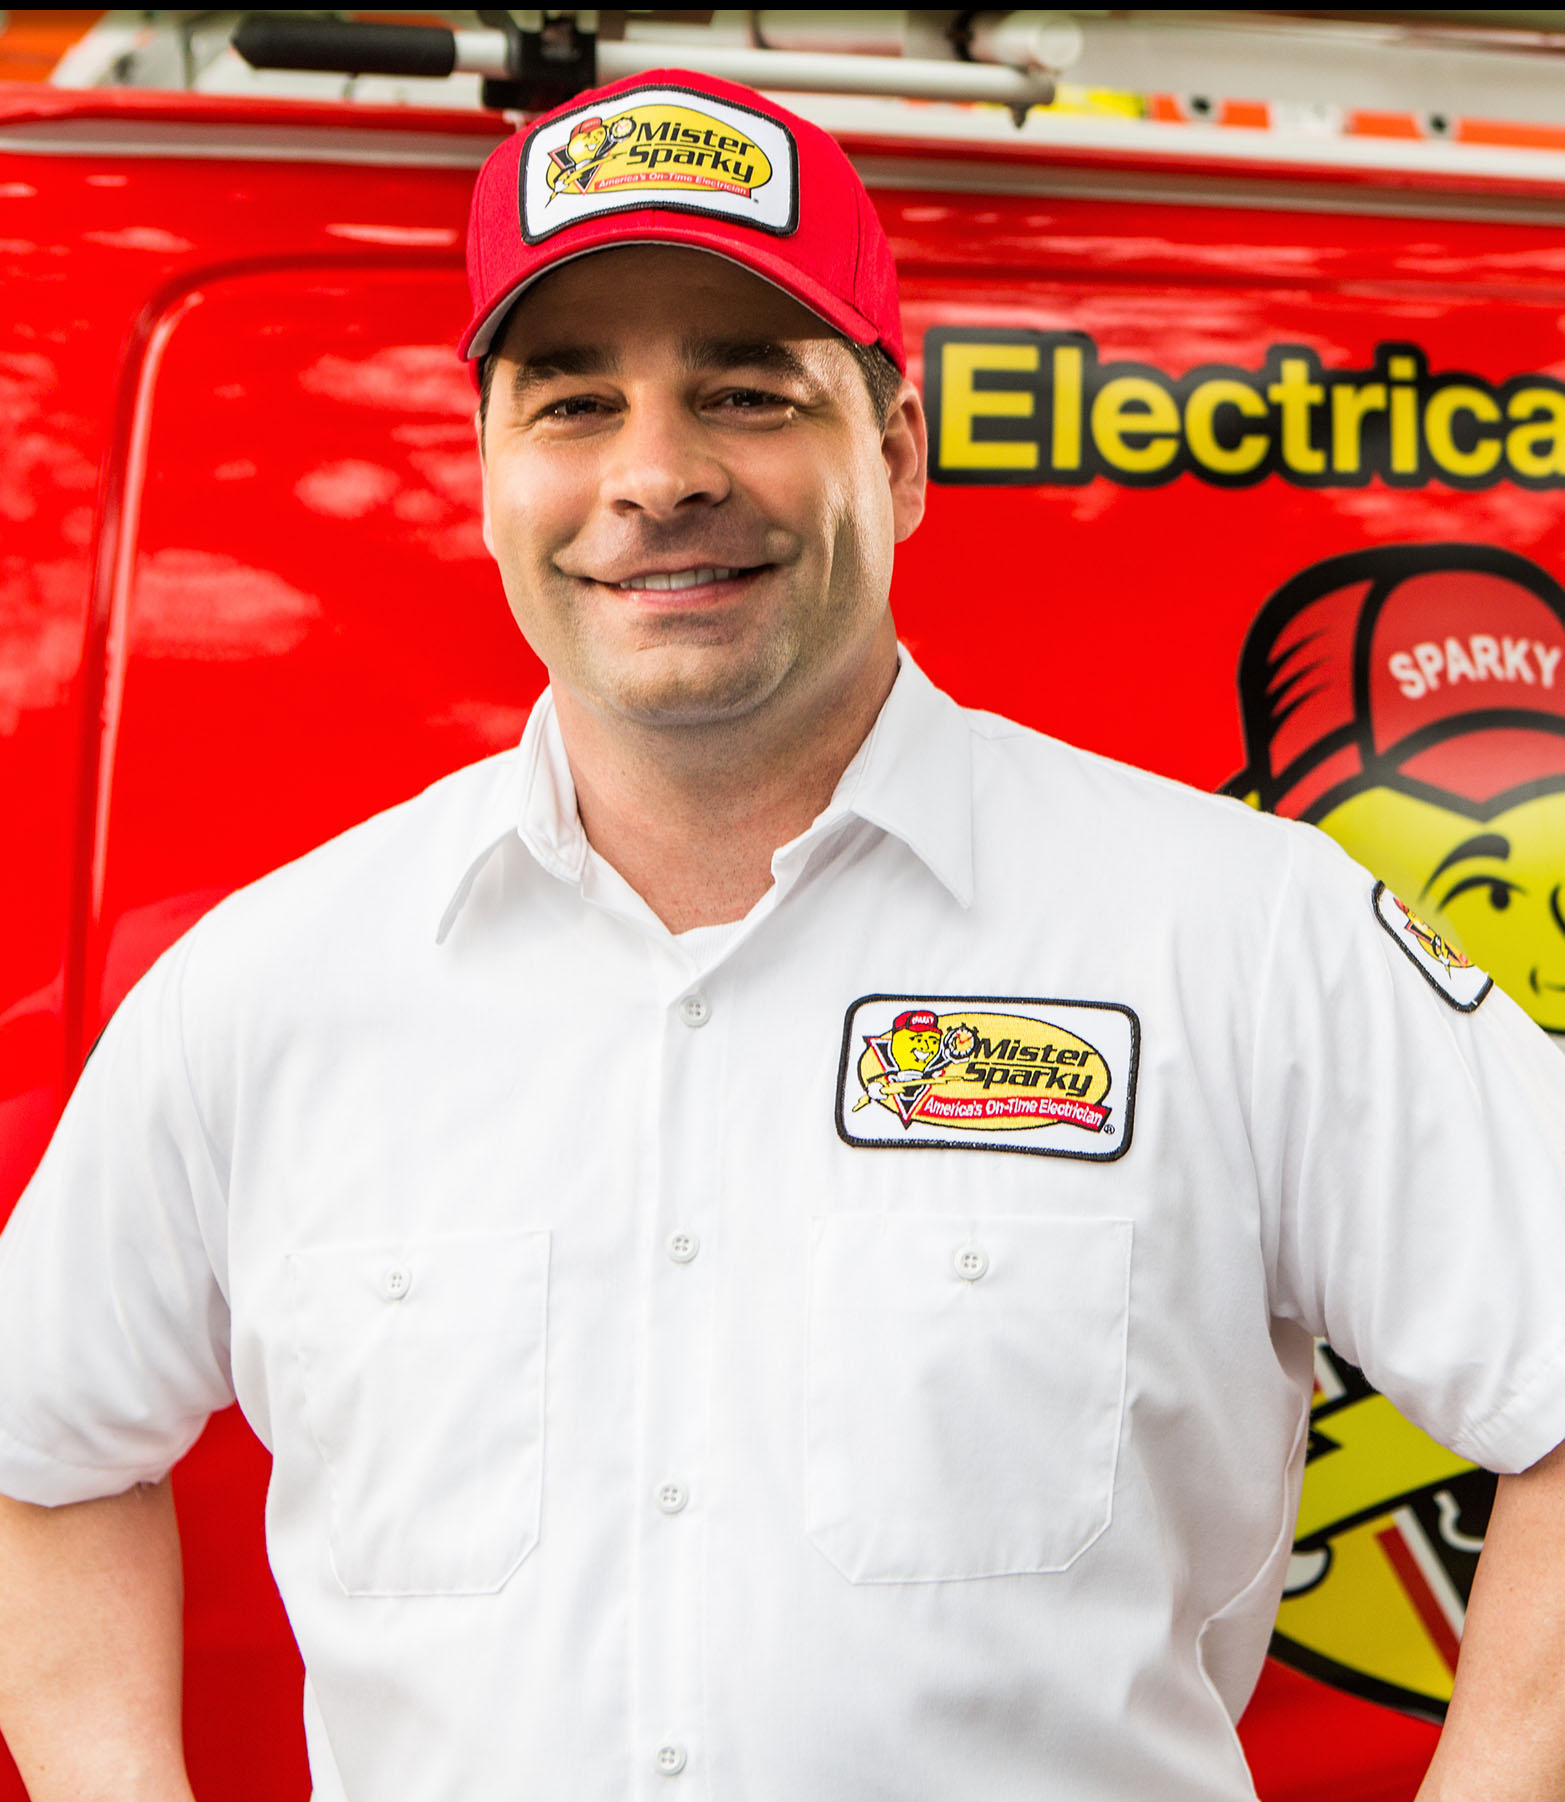 Mister Sparky Electrician NWA image 5